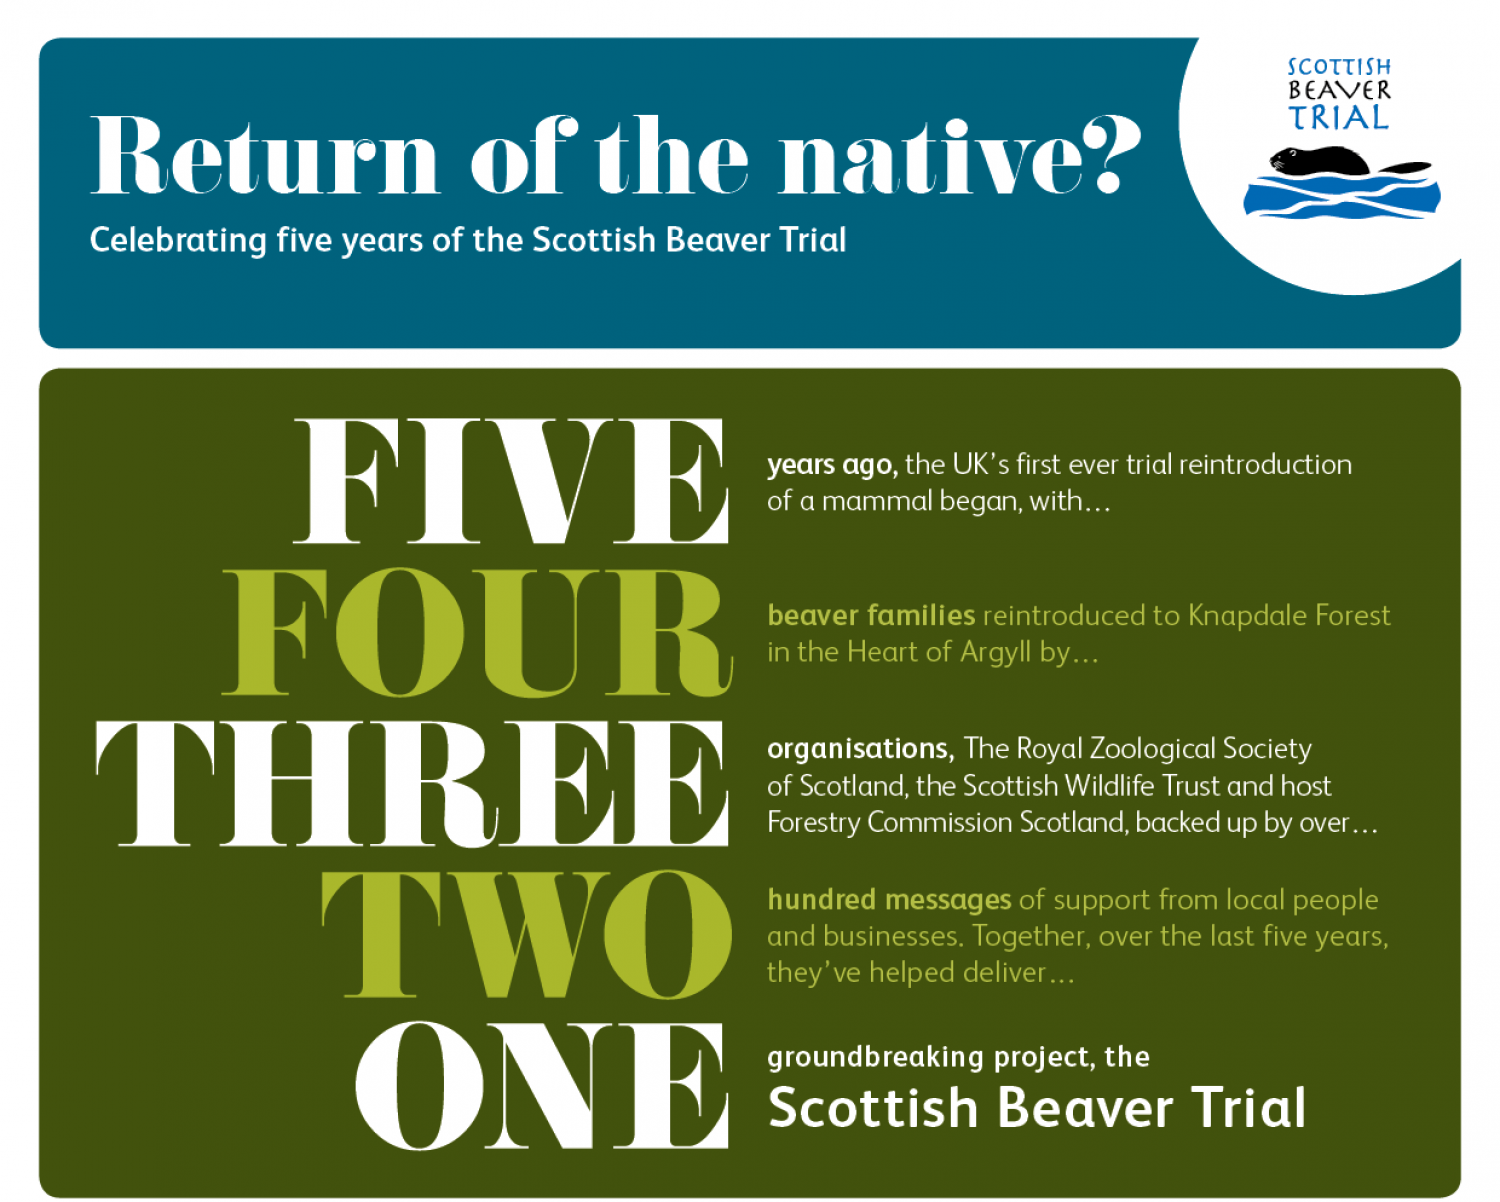 Celebrating Five Years of the Scottish Beaver Trial Infographic